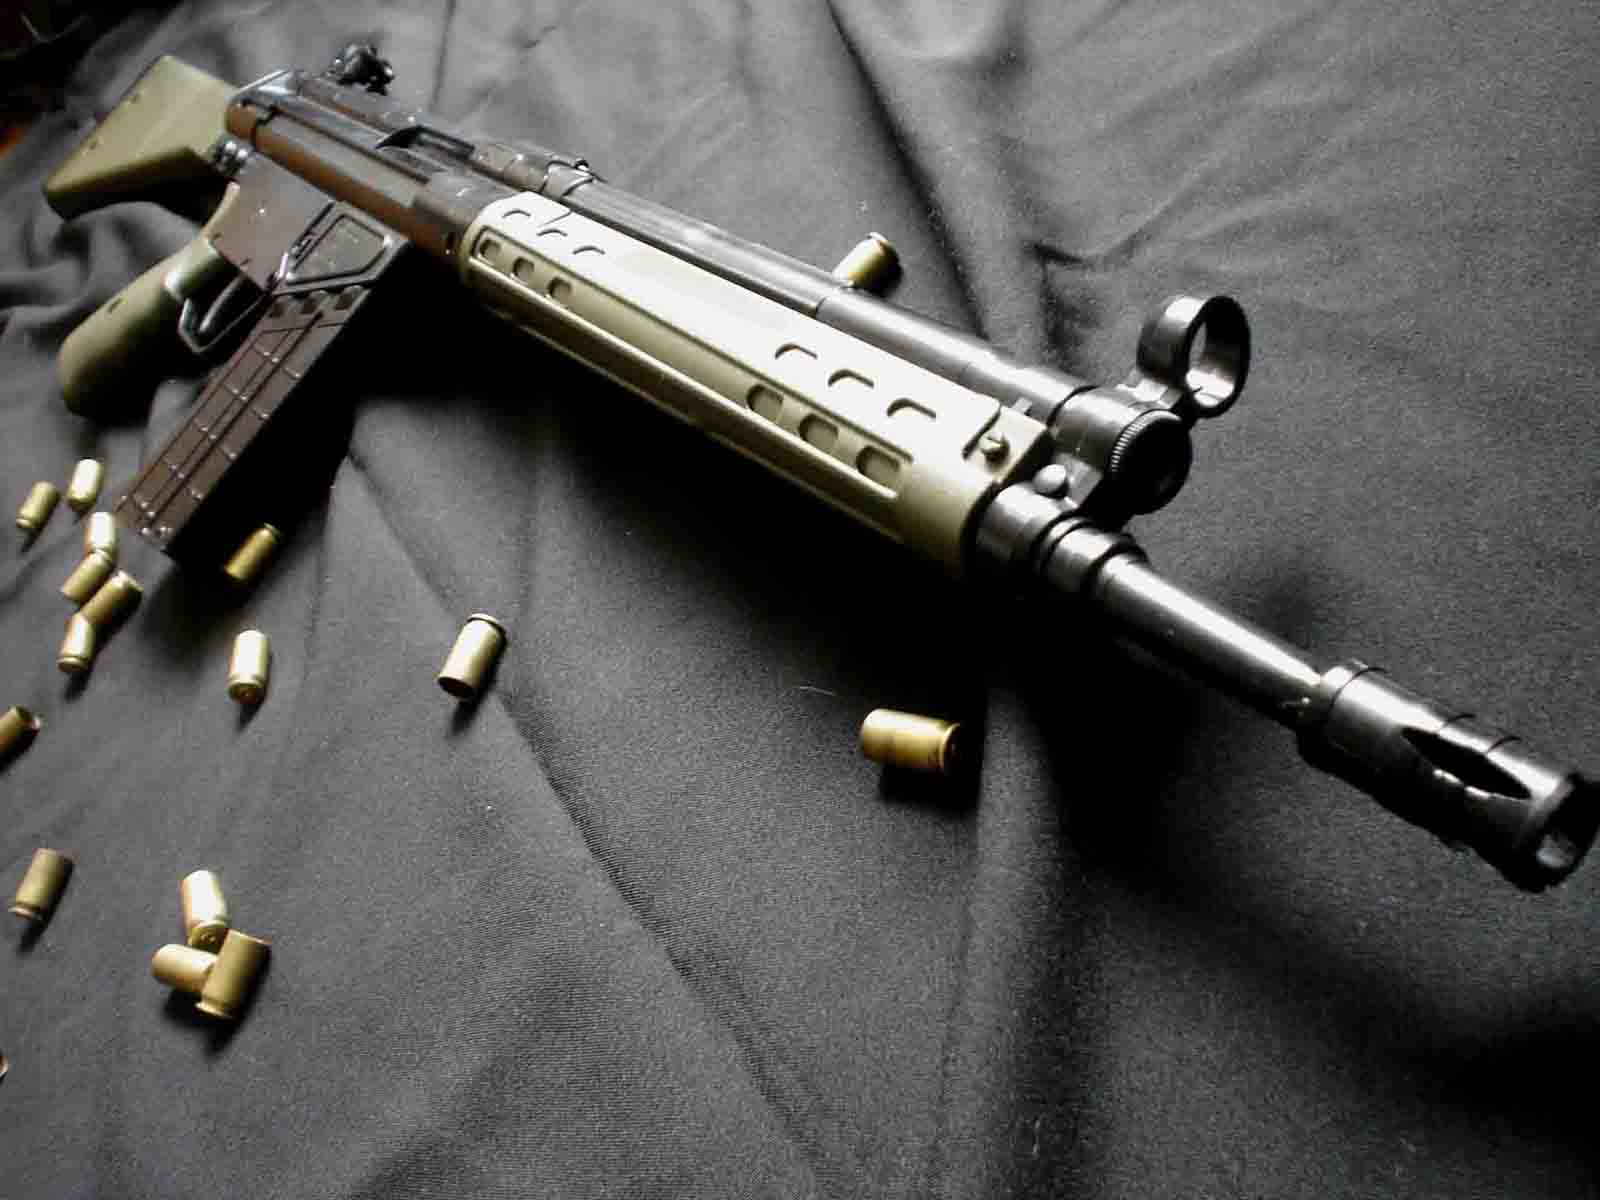 http://1.bp.blogspot.com/-Q6__Nb4AIfY/Tn-IVmGY1QI/AAAAAAAADTA/dspRoAL9RVs/s1600/G3_Weapons_Bullet_Desktop_Wallpapers_Vvallpaper.net.jpg